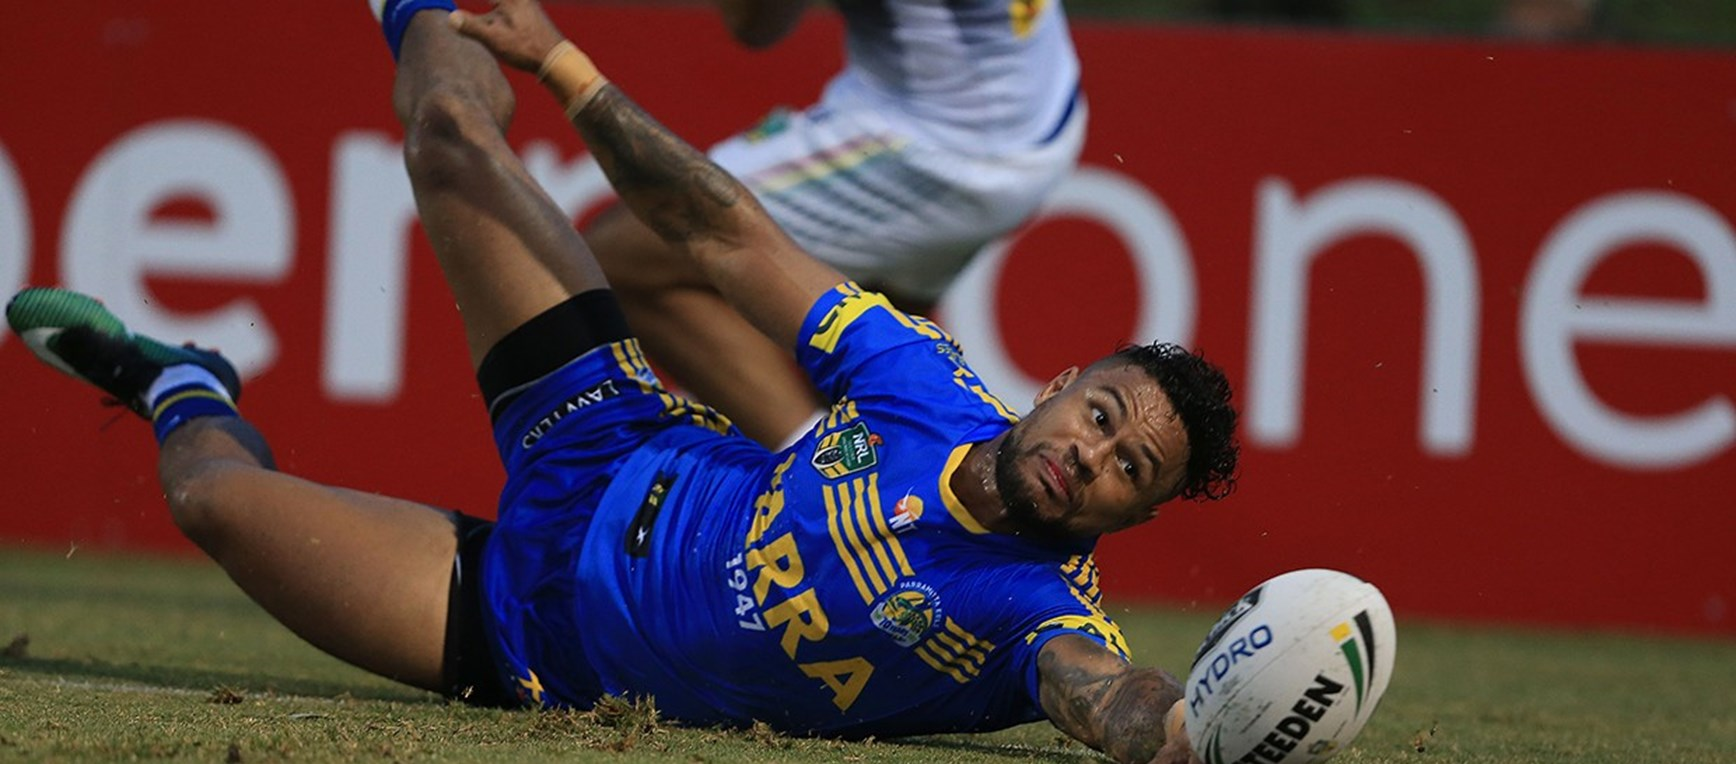 GALLERY | Eels v Panthers trial